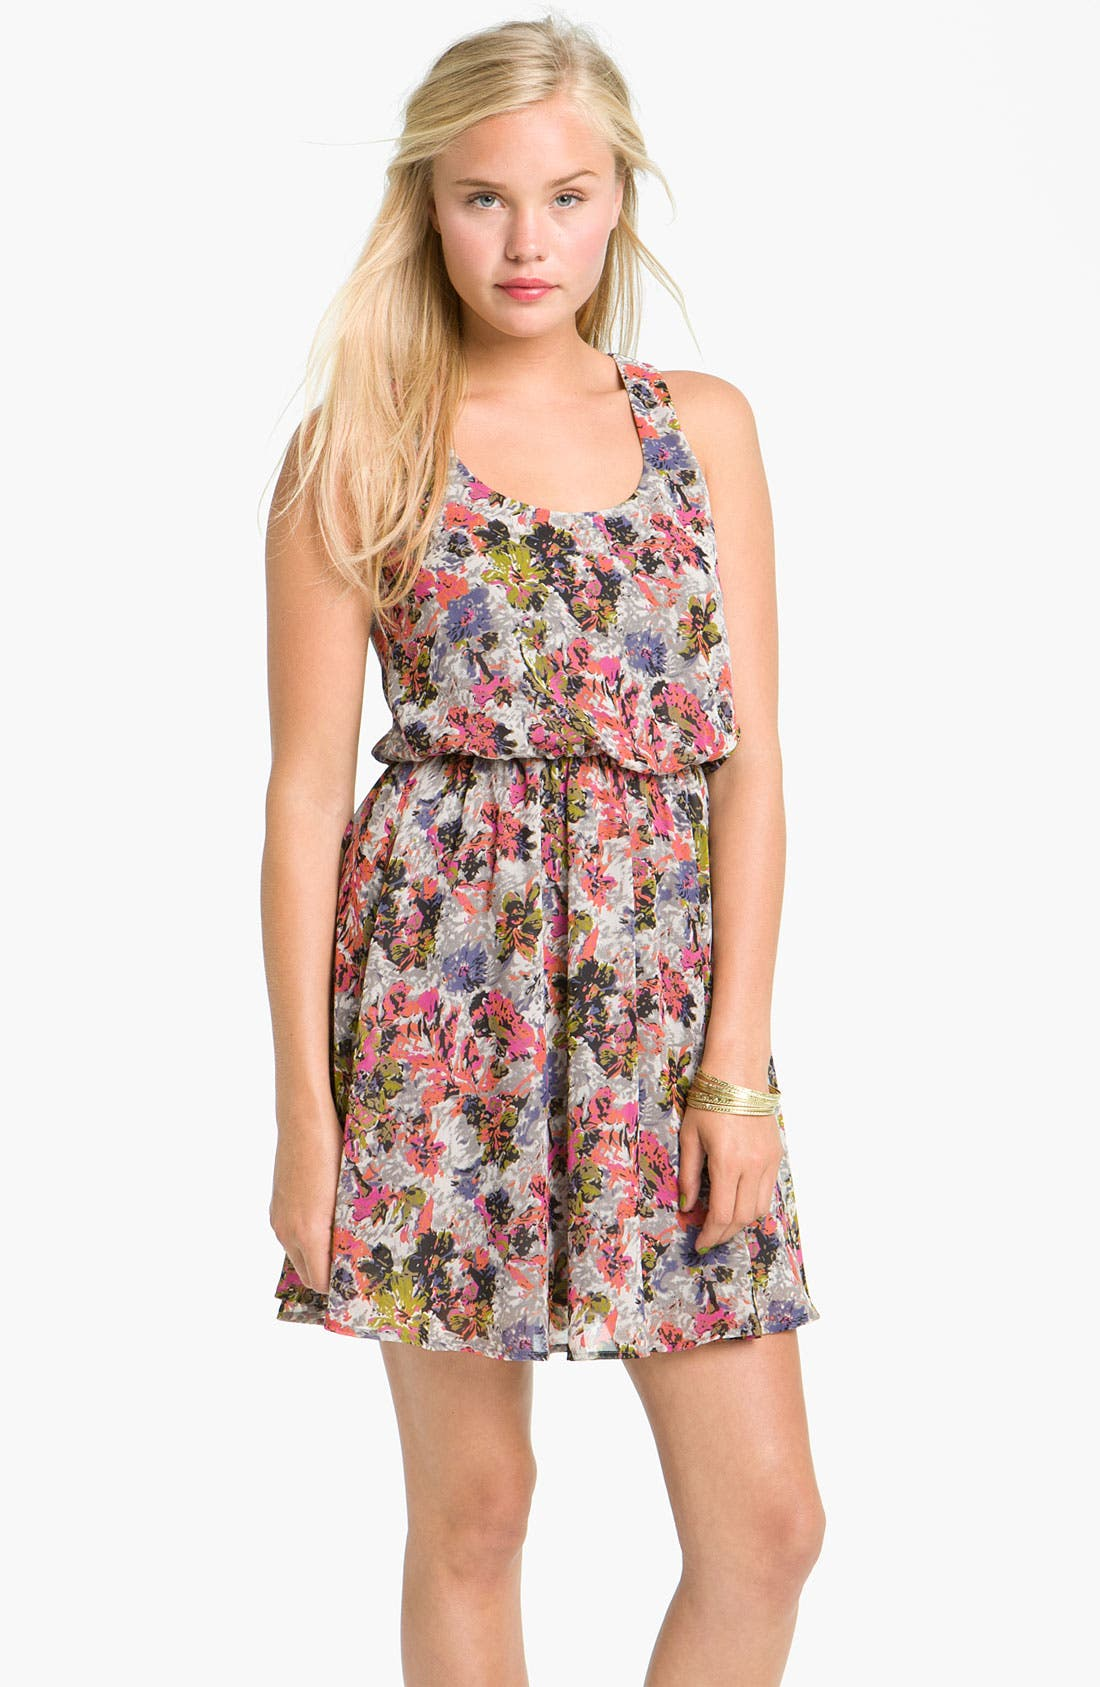 Alternate Image 1 Selected - Lush 'Drew' Blouson Tank Dress (Juniors)